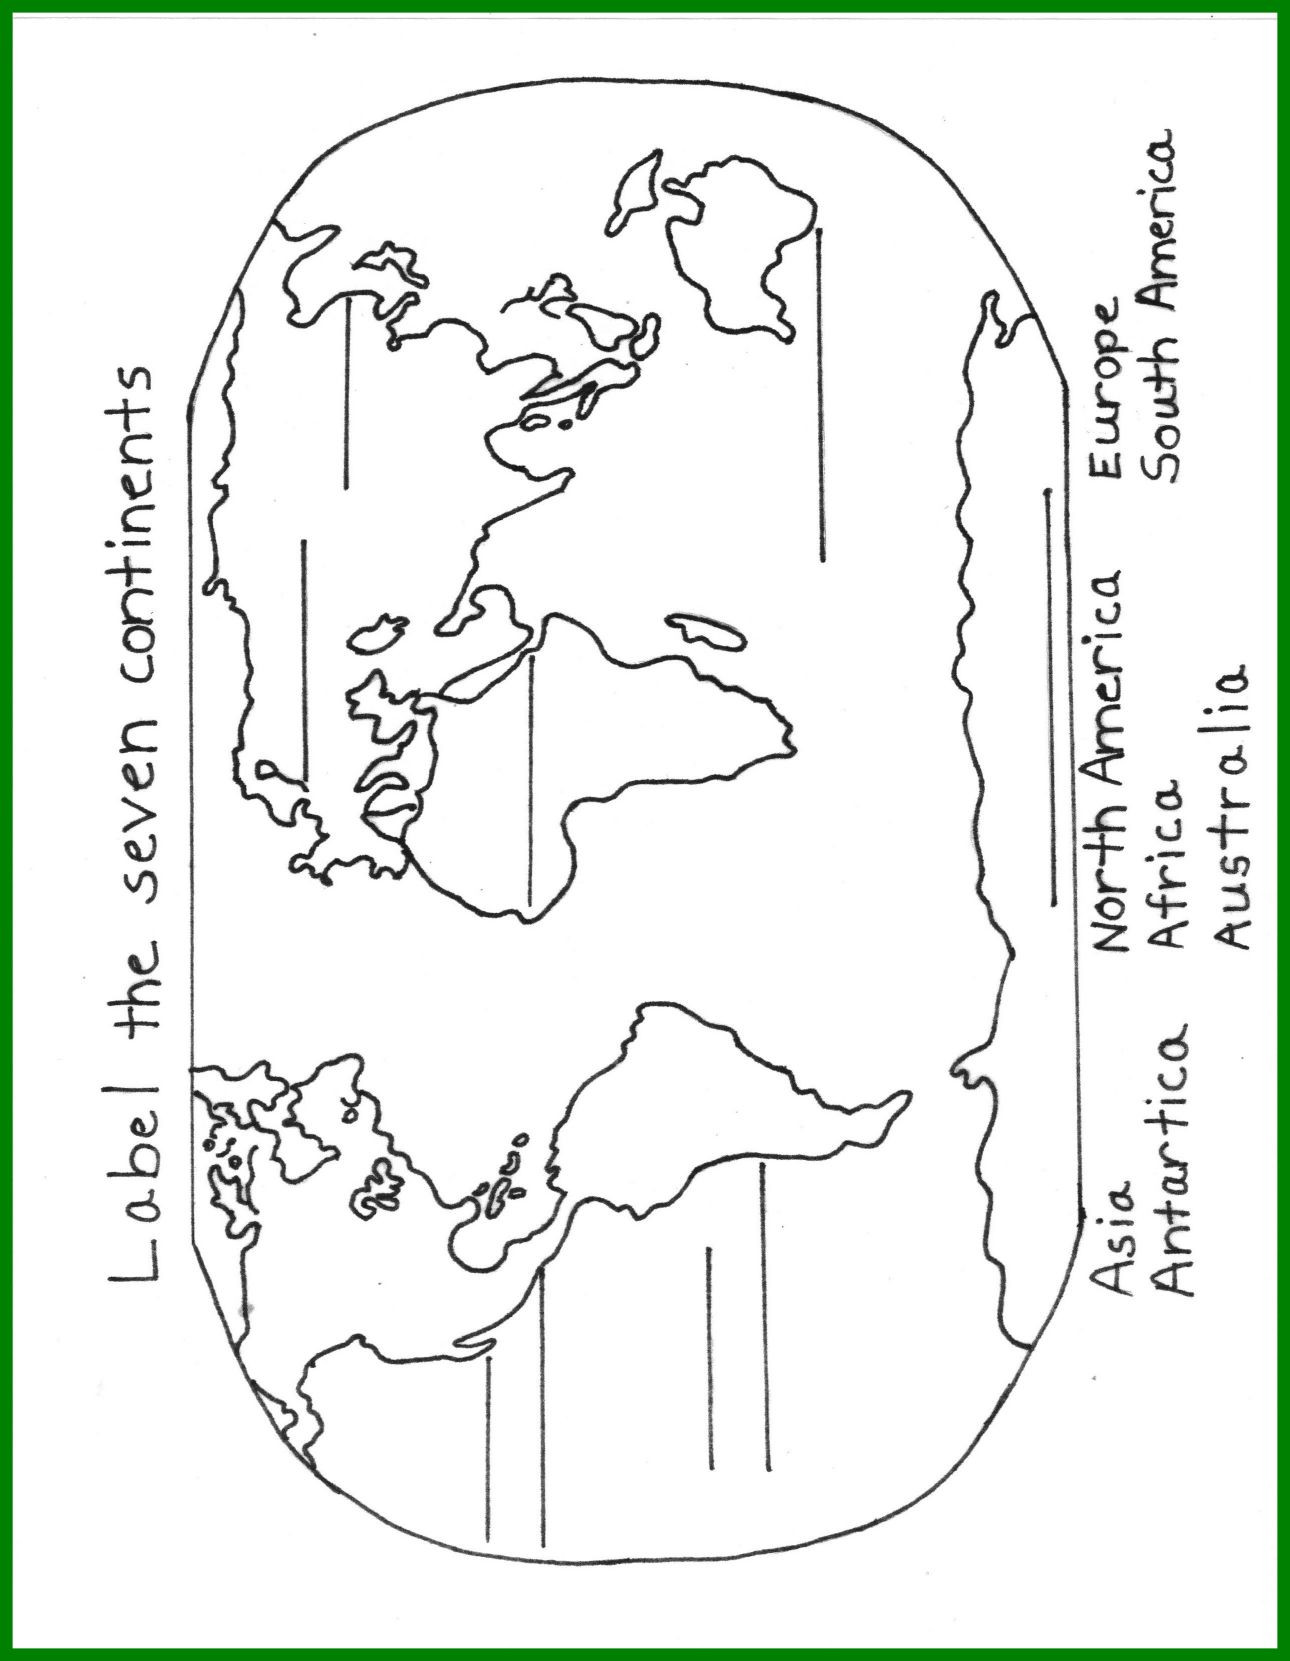 7 Continents Printable Map New Continent Coloring Pages 10 for Continents Page within Frabbi